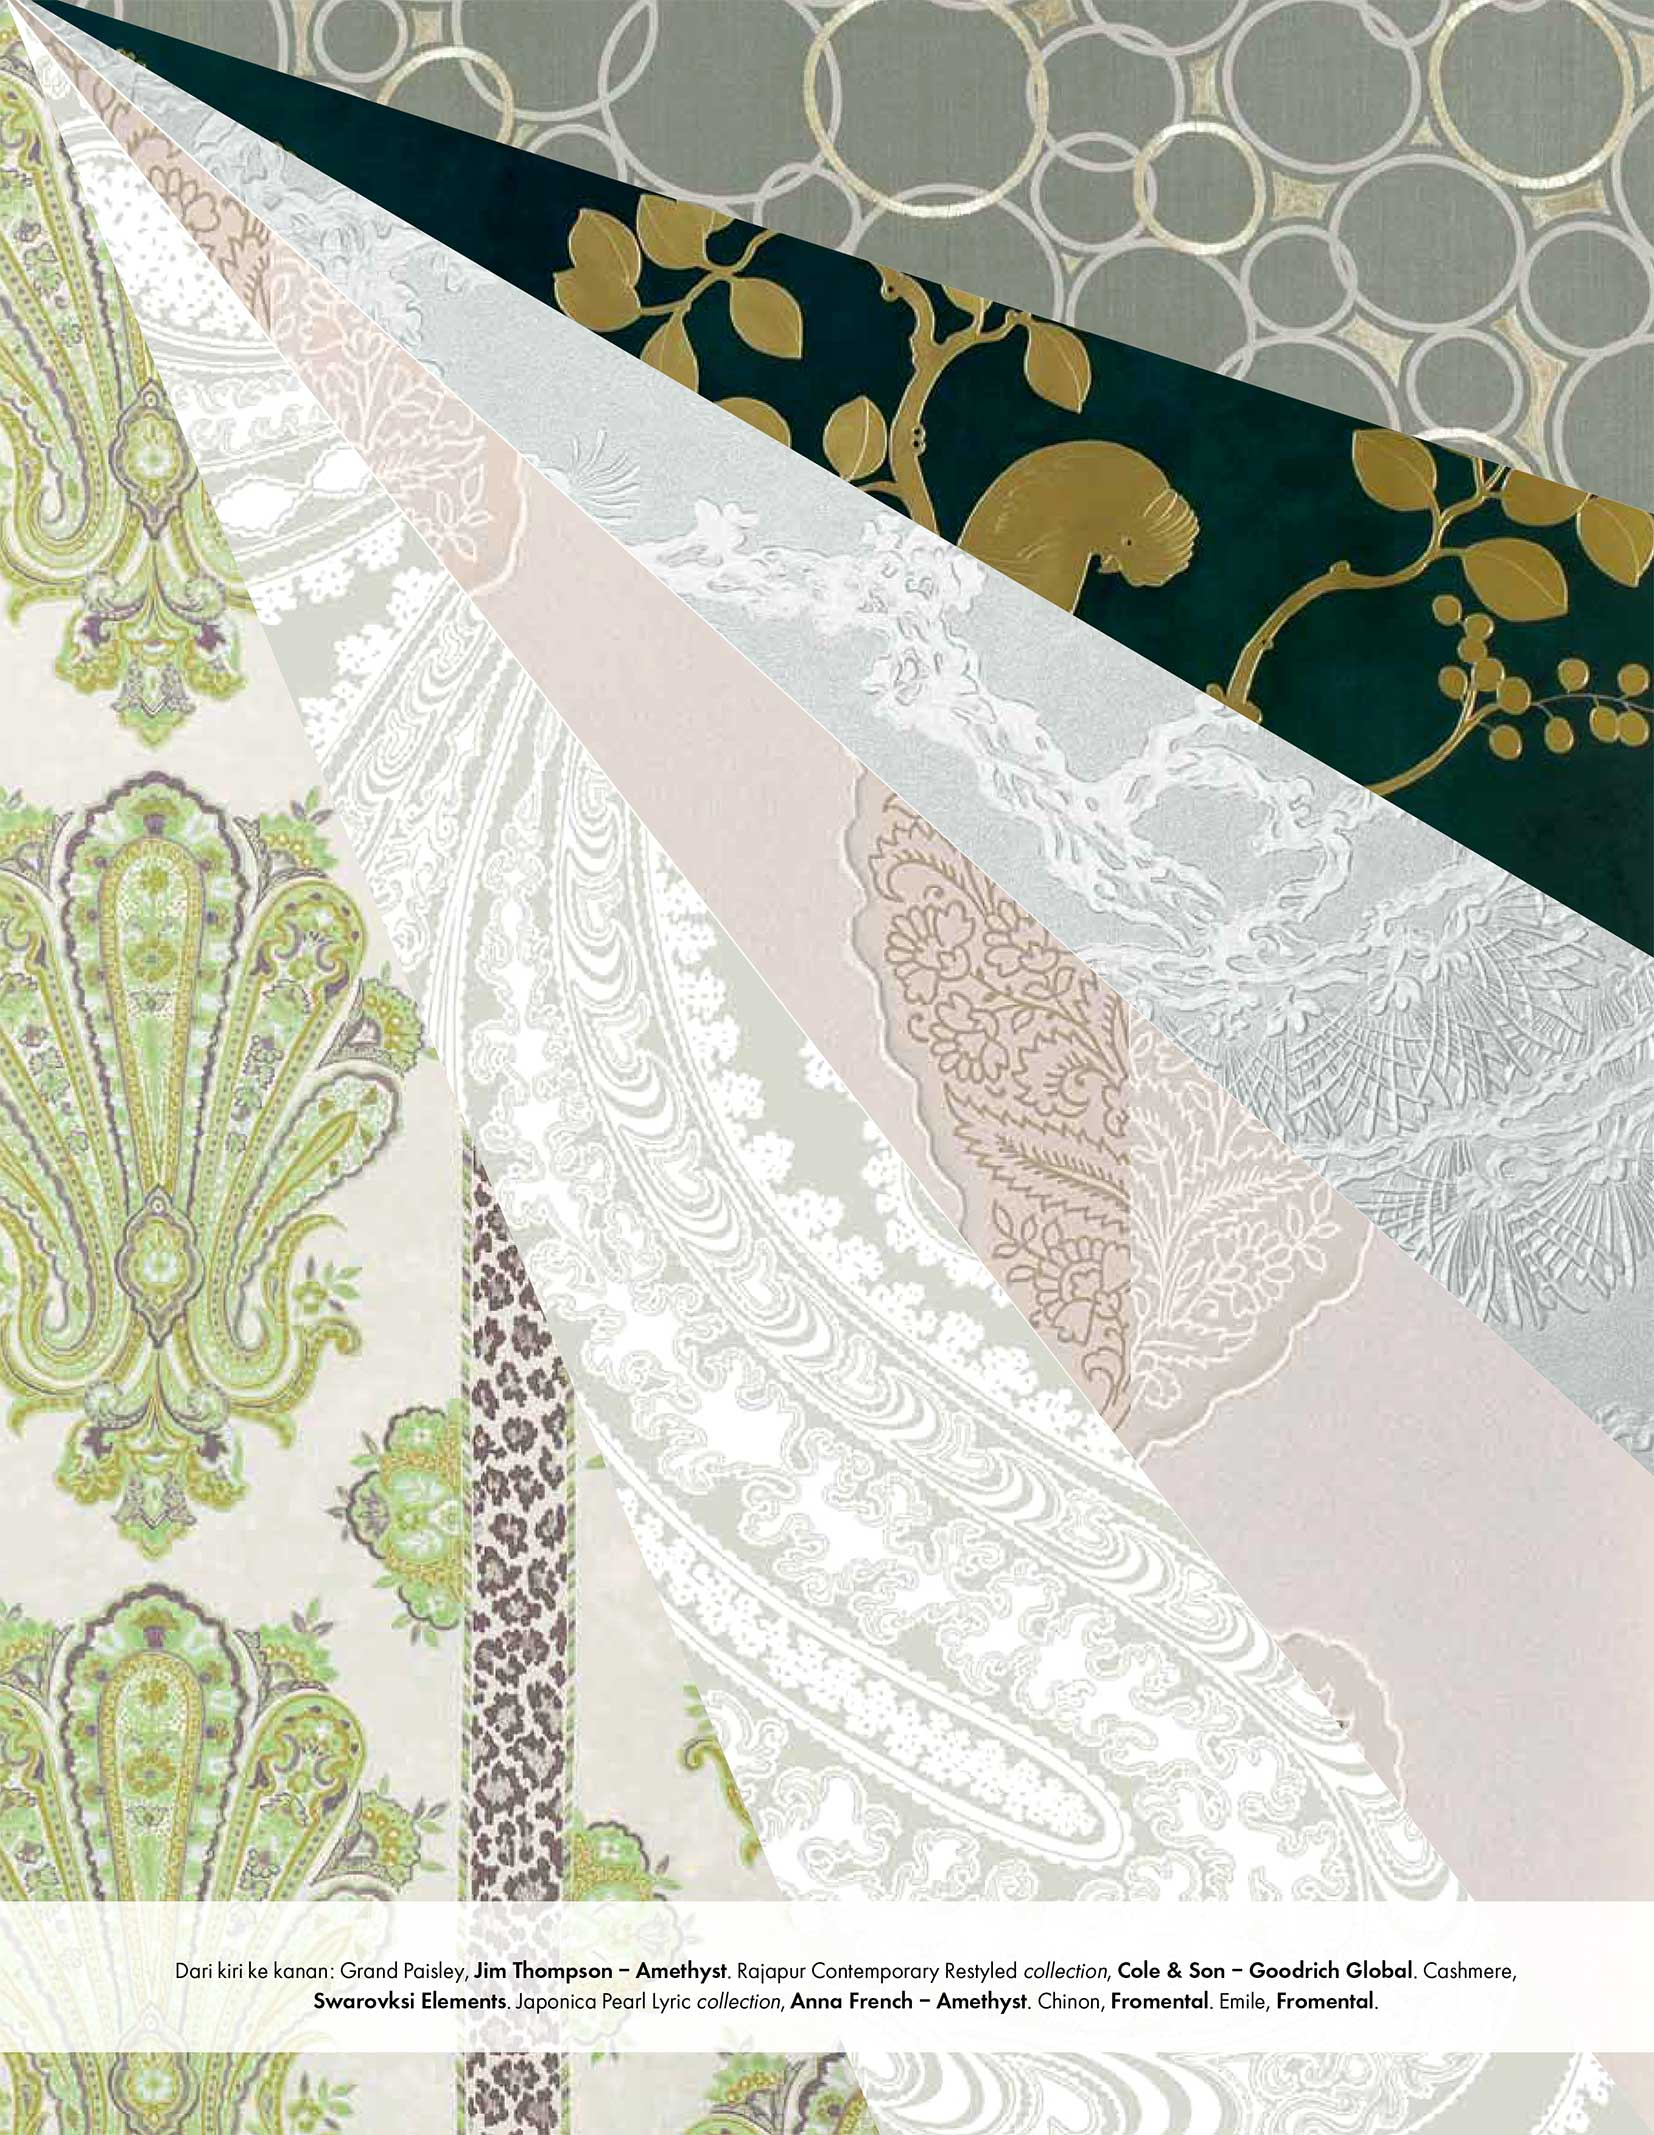 ED-19-Indonesia-NOW-WALLPAPER-&-FABRICS-pages-1-and-2-2